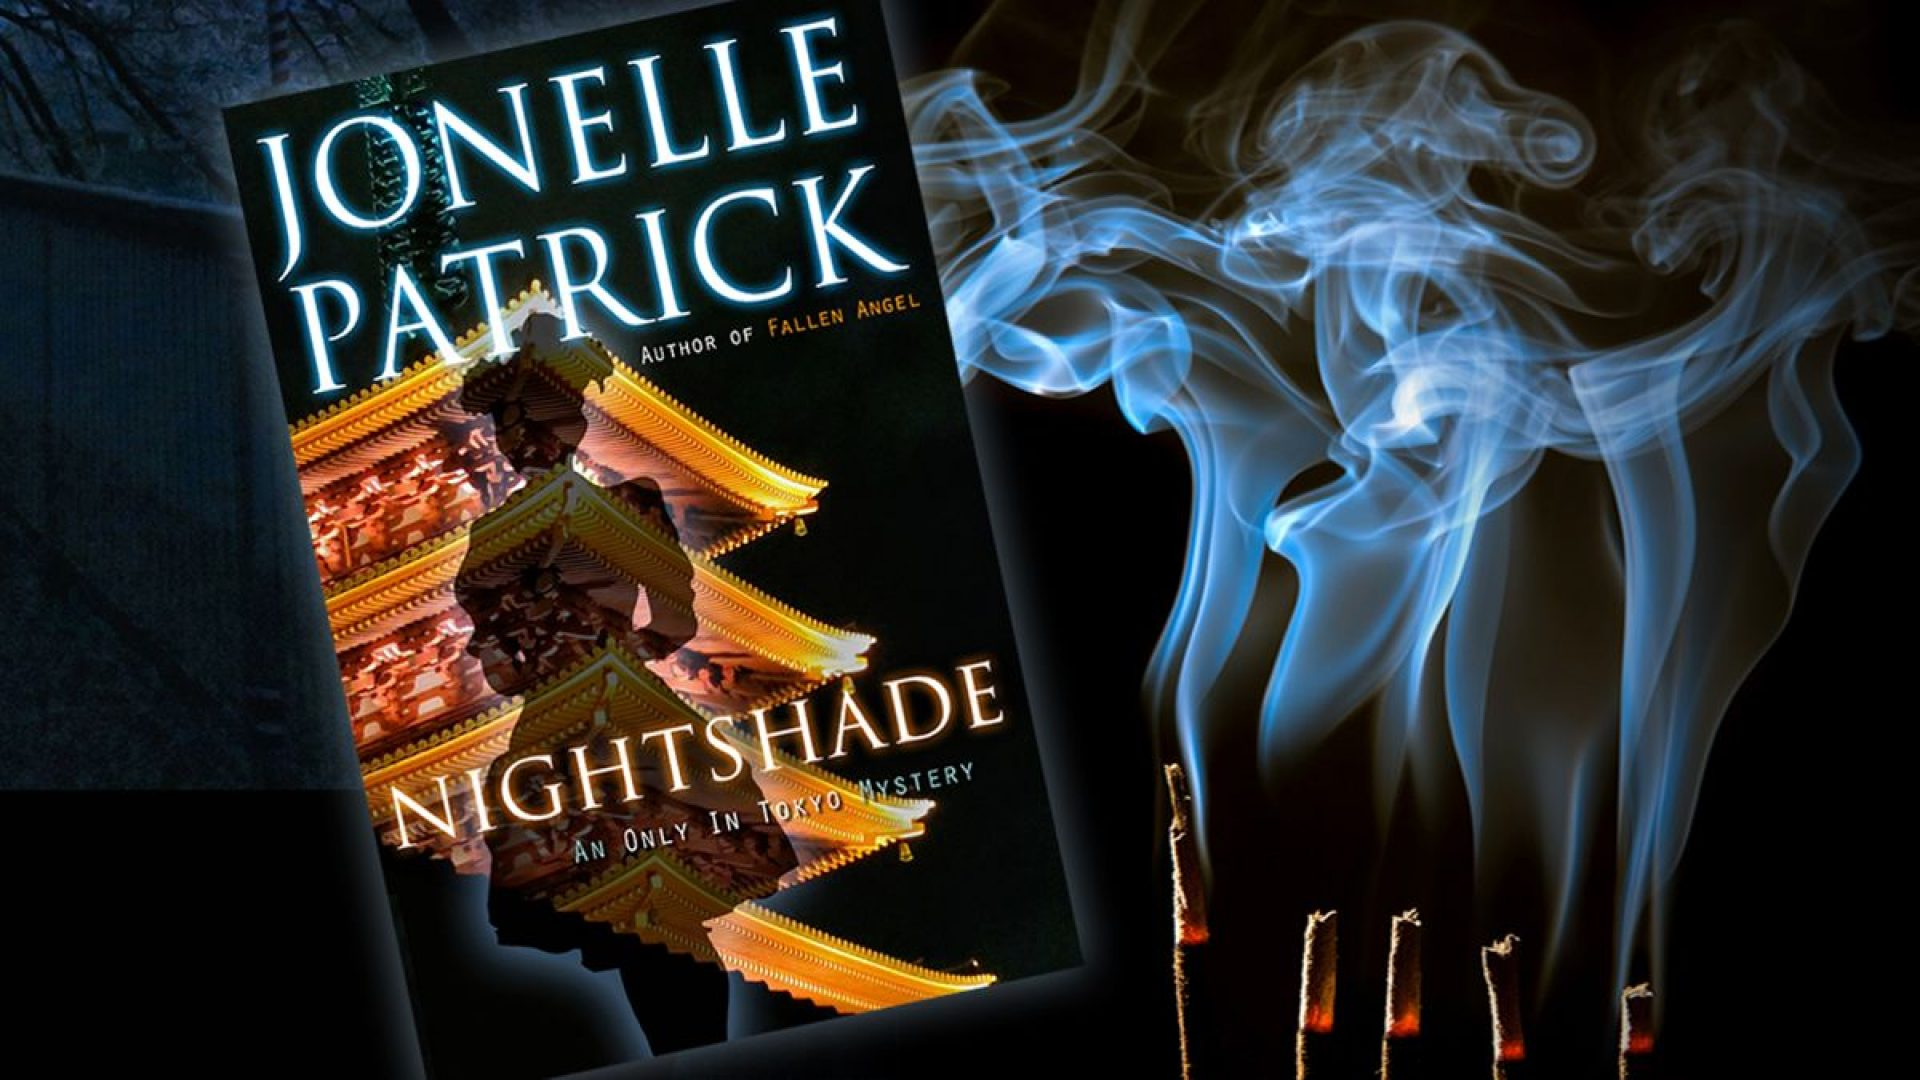 Review: Nightshade by Jonelle Patrick